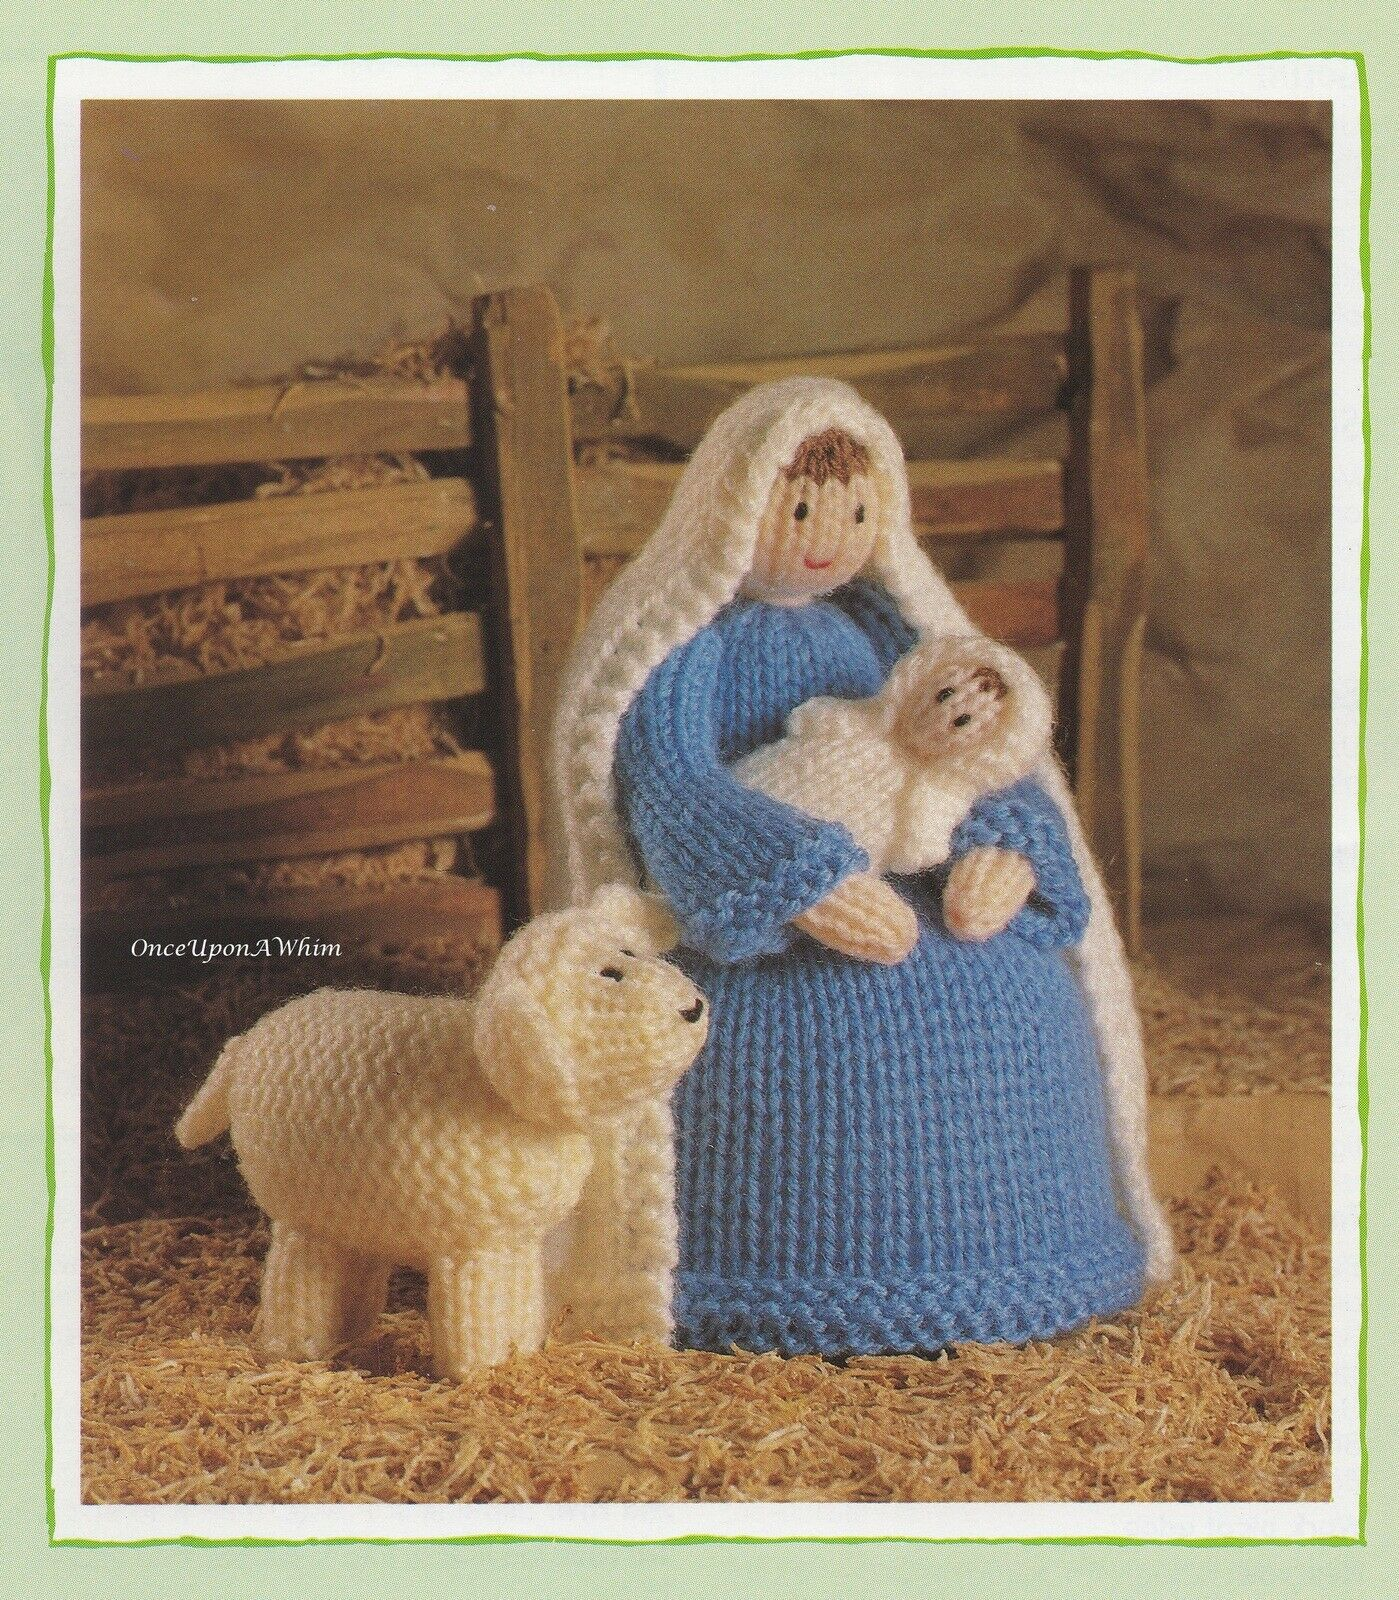 Jean Greenhowe Knitting Pattern Book Christmas Special Delivery is Free